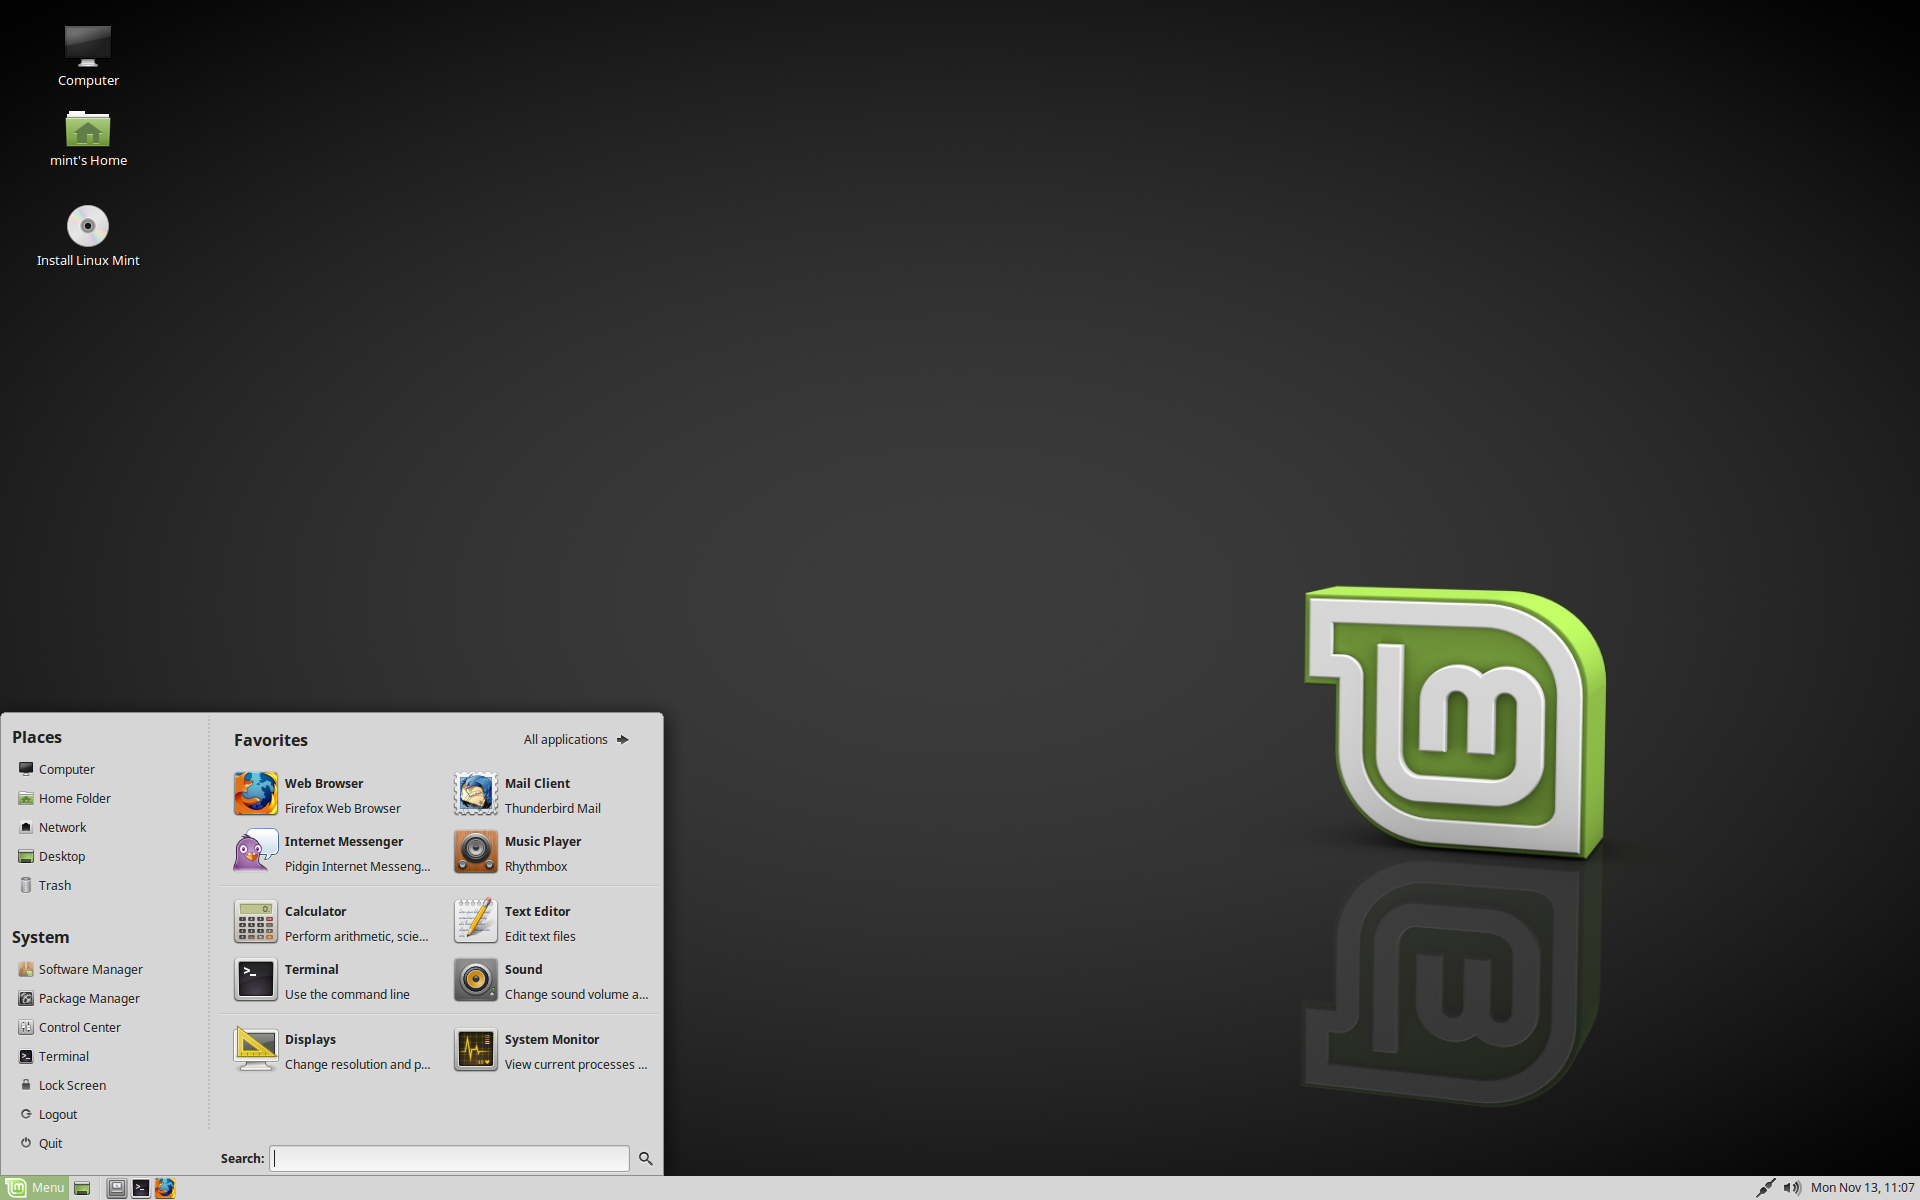 linux mint 18.2 installation guide